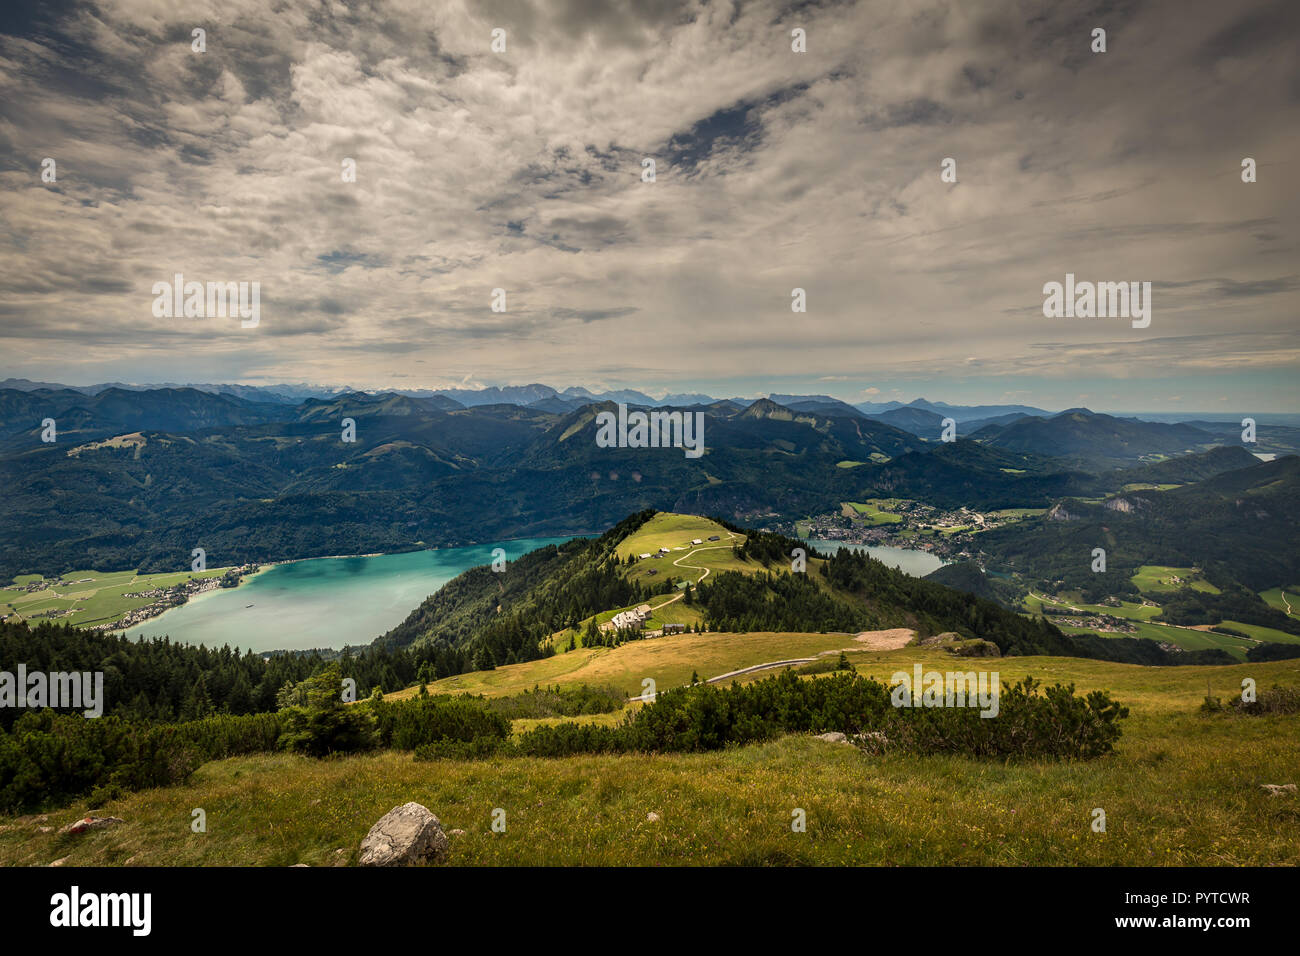 Mountain landscape with hiking trail and view of beautiful landscape over the Wolfgangsee Stock Photo